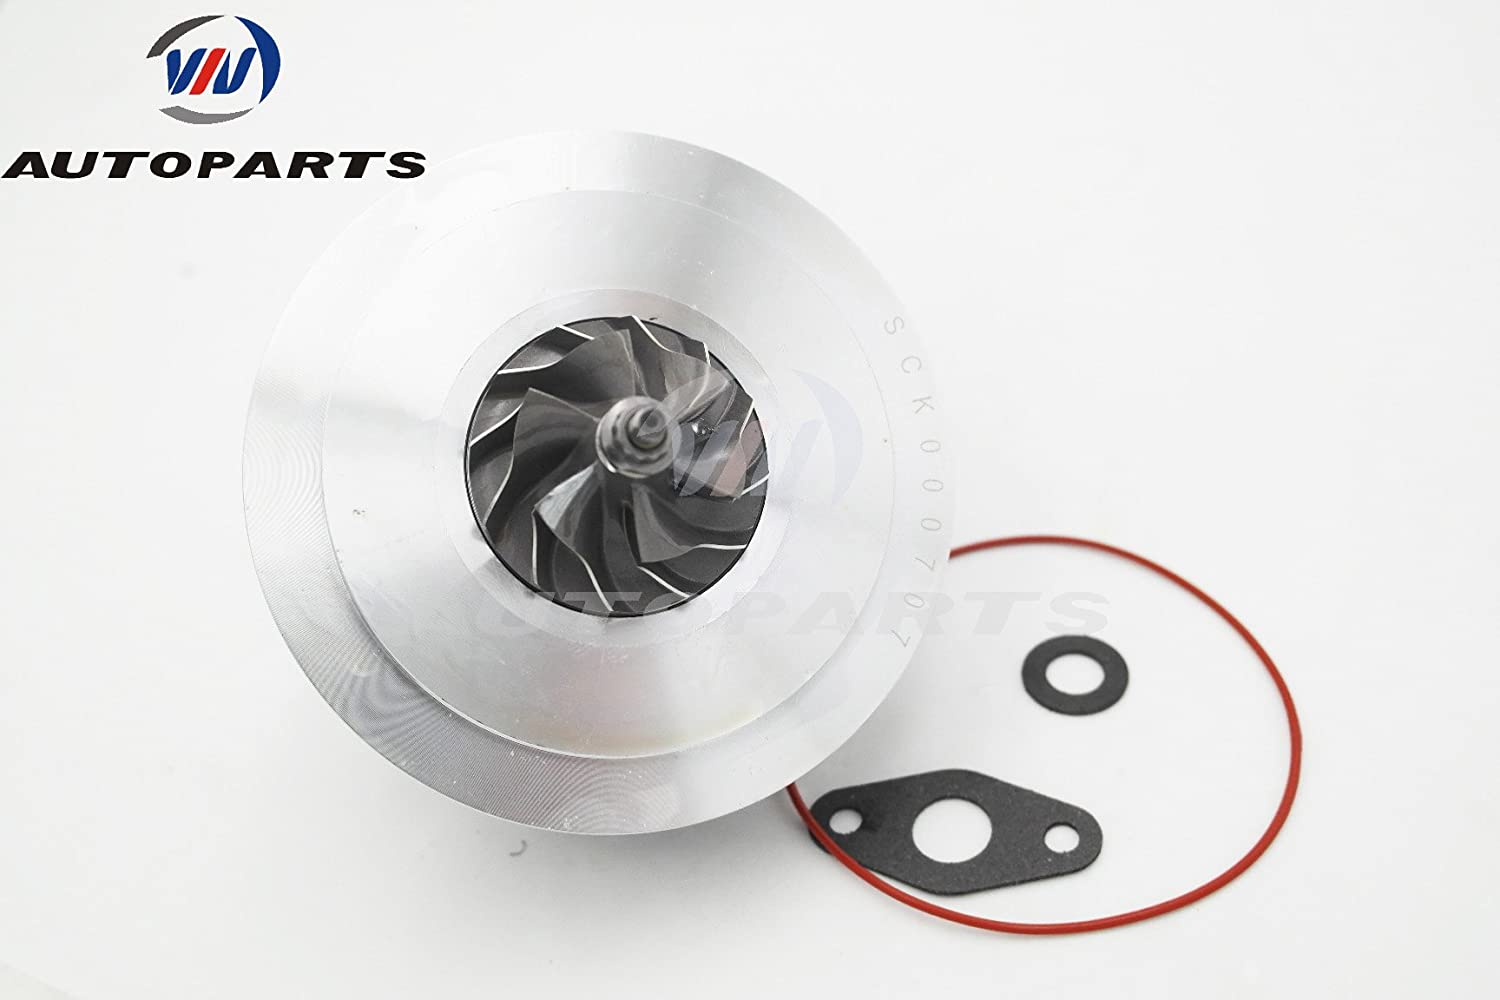 Amazon.com: CHRA 703890-0090 for Turbocharger 725864-0001 for Nissan Primera X-Trail 2.2L Diesel Engine: Automotive